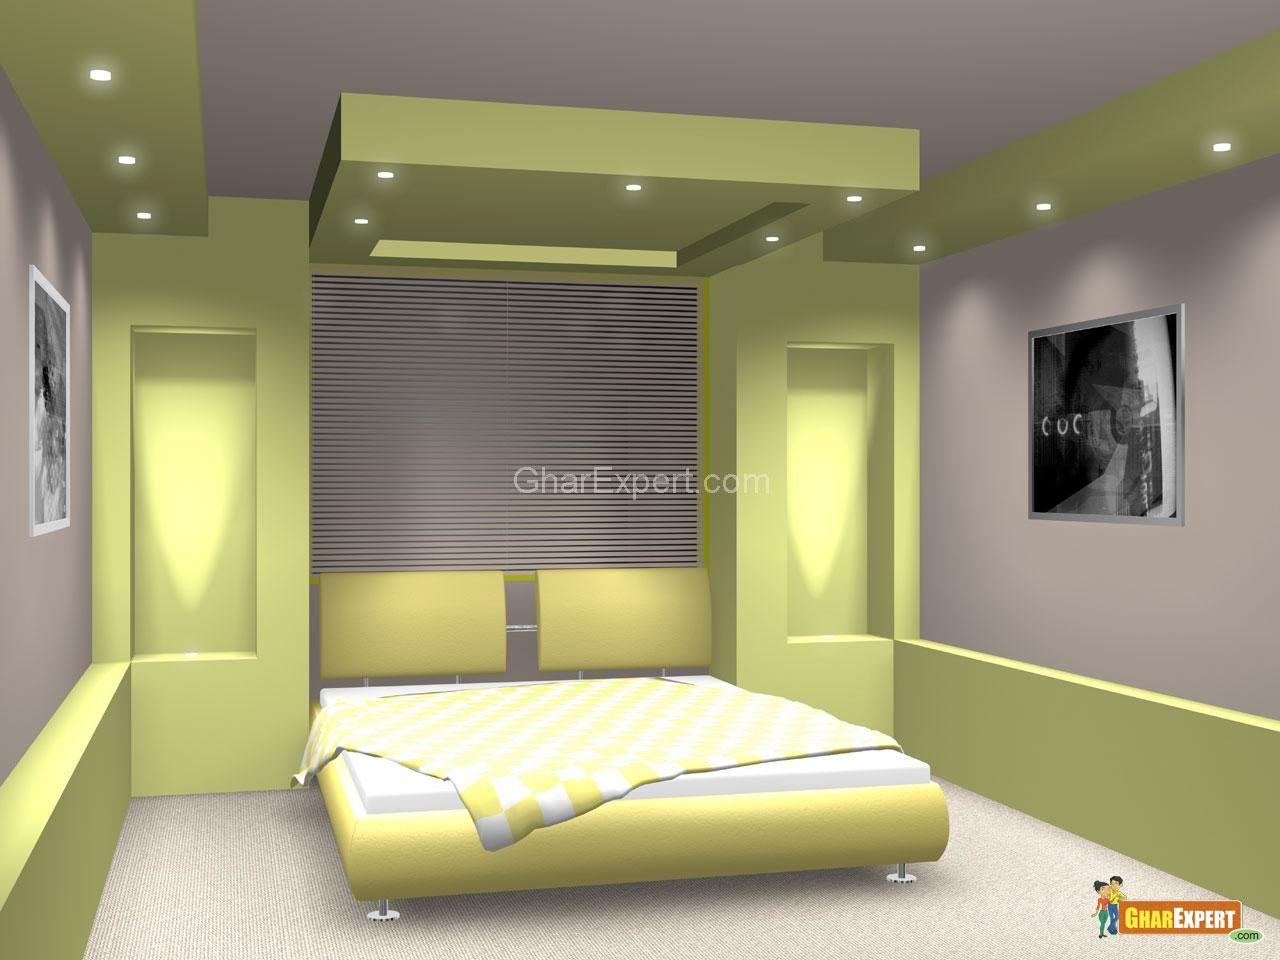 Ceiling Design For Small Room Green Pop Ceiling Colors With Lighting For Bedroom